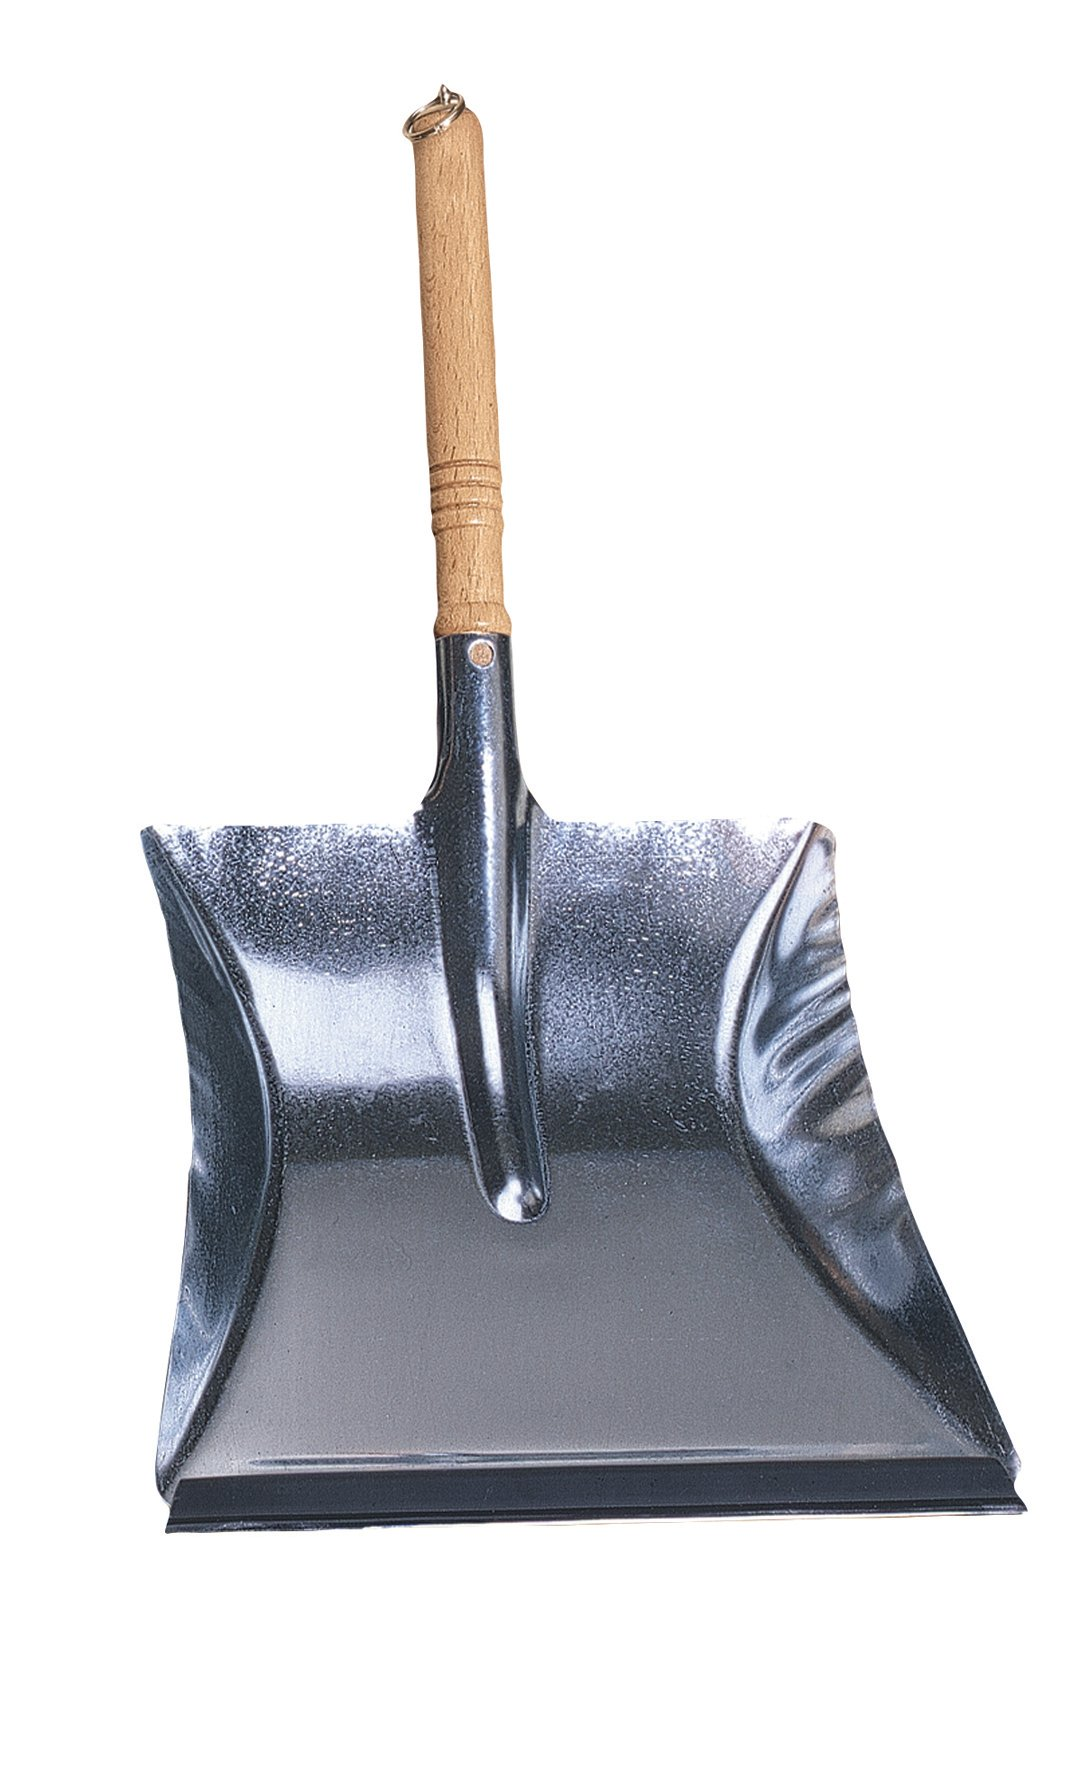 Redecker Dust Pan with Oiled Wooden Handle, 17-3/4-Inches, Zinc-Coated Steel